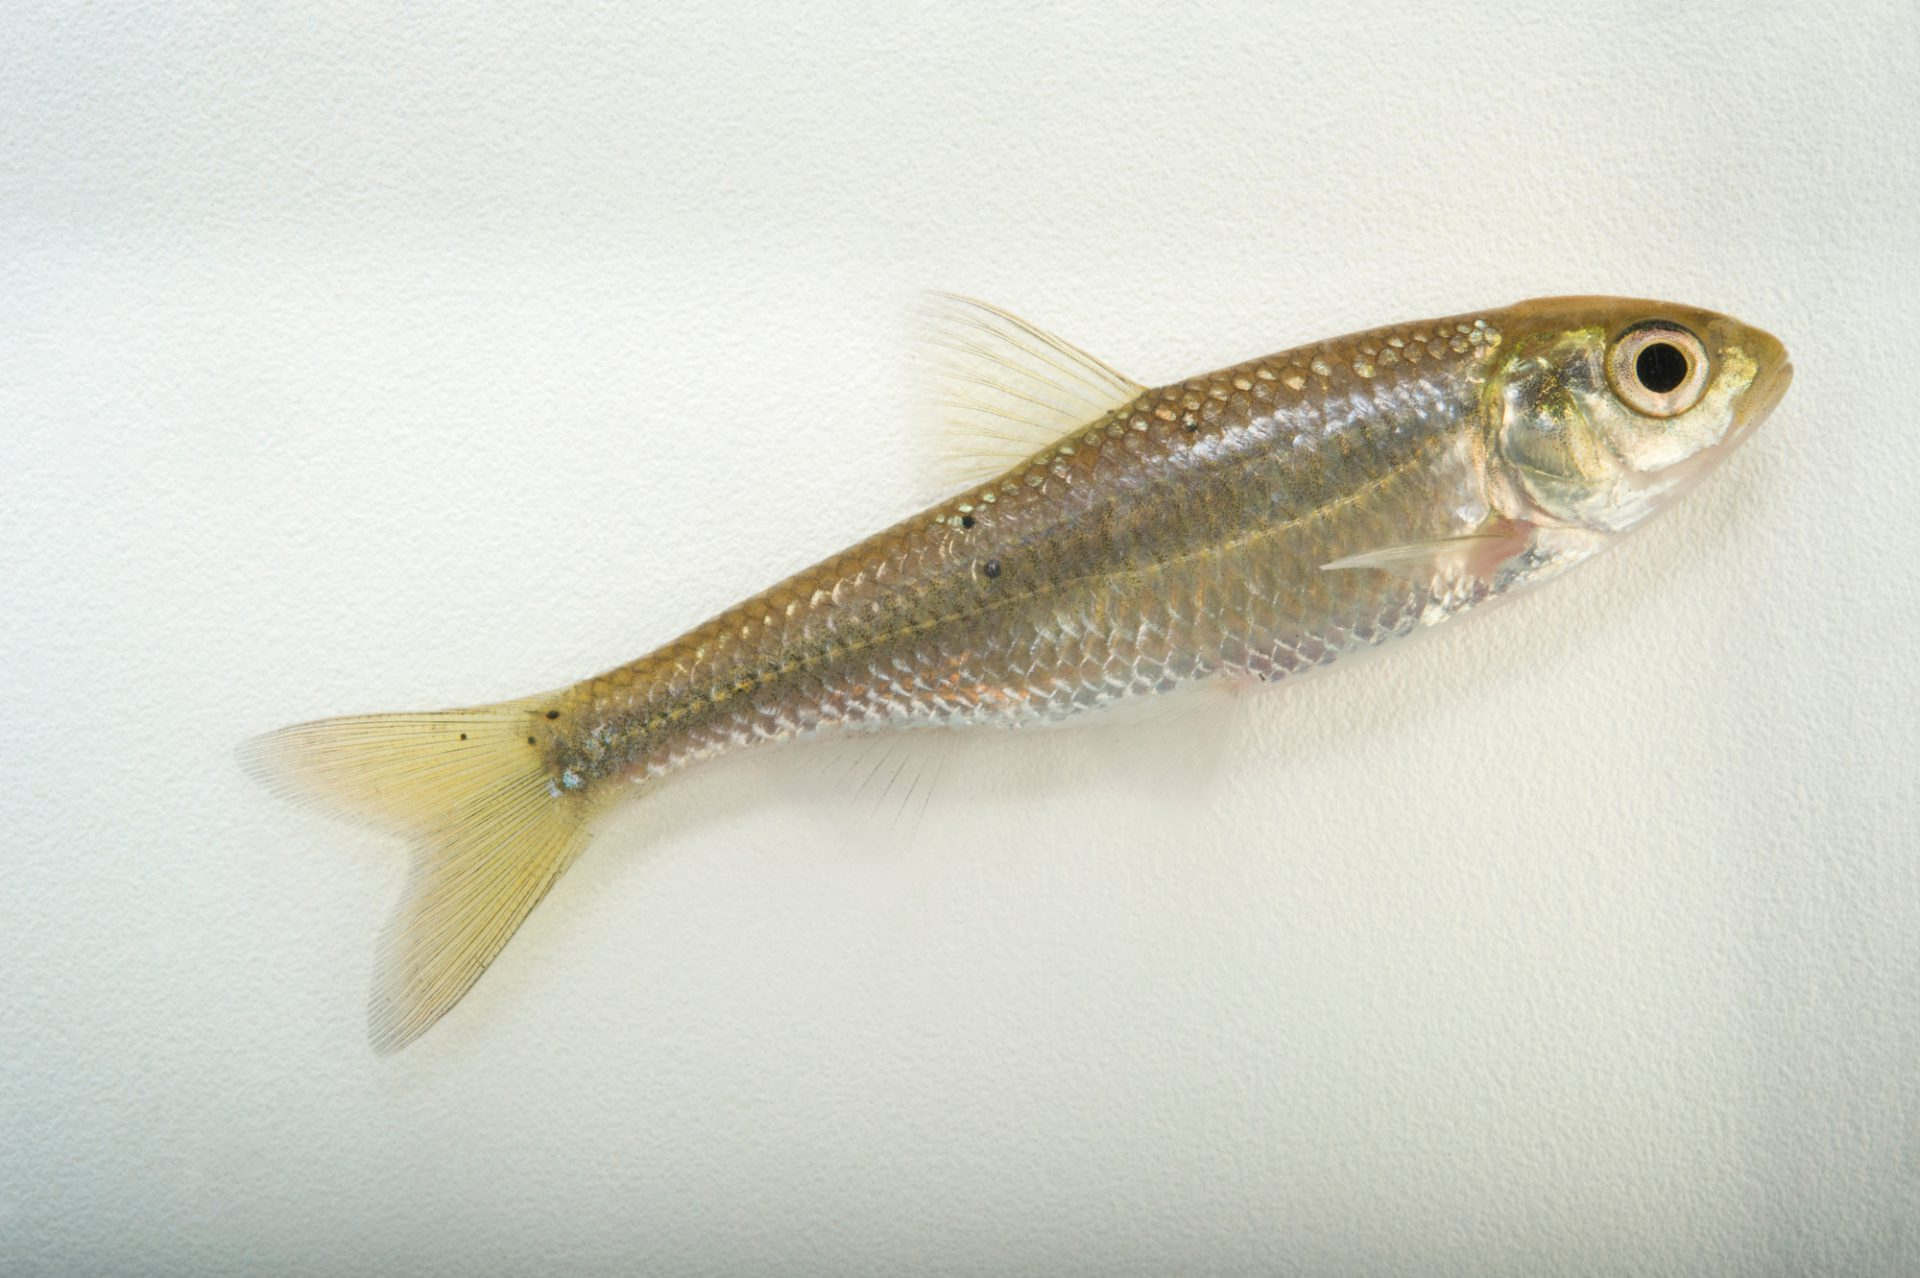 Photo: Striped shiner (Luxilus chrysocephalus chrysocephalus) collected from Big Darby Creek near Circleville, OH.